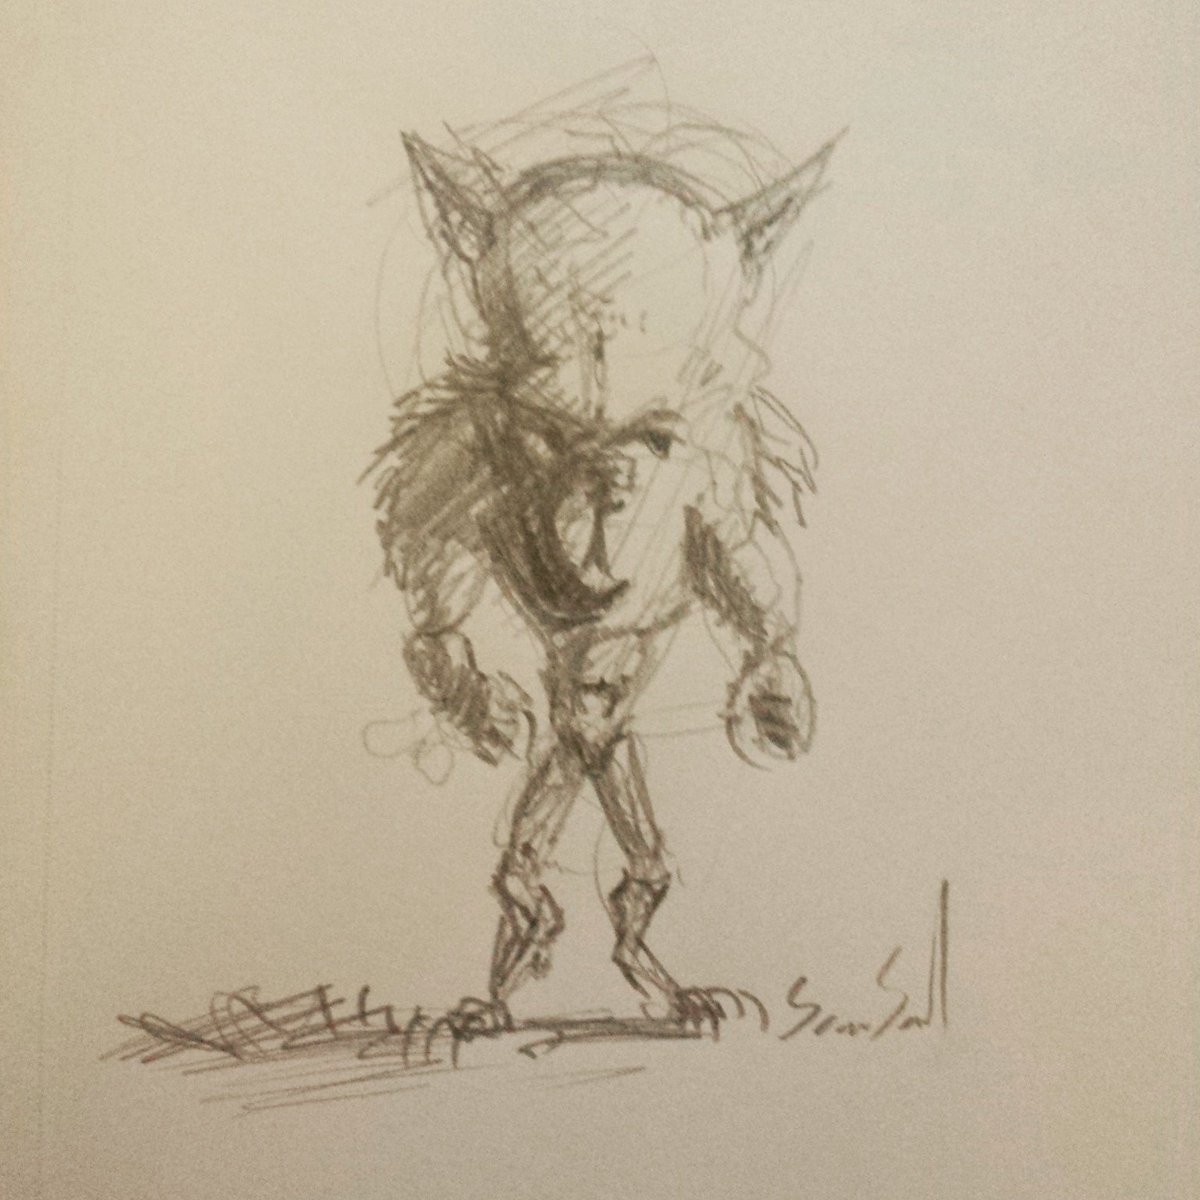 #werewolf a damn small and smart one too! The worst kind #horror #horrorfan #drawing #Sketching #WerewolfWednesday<br>http://pic.twitter.com/j3YNaSNdob